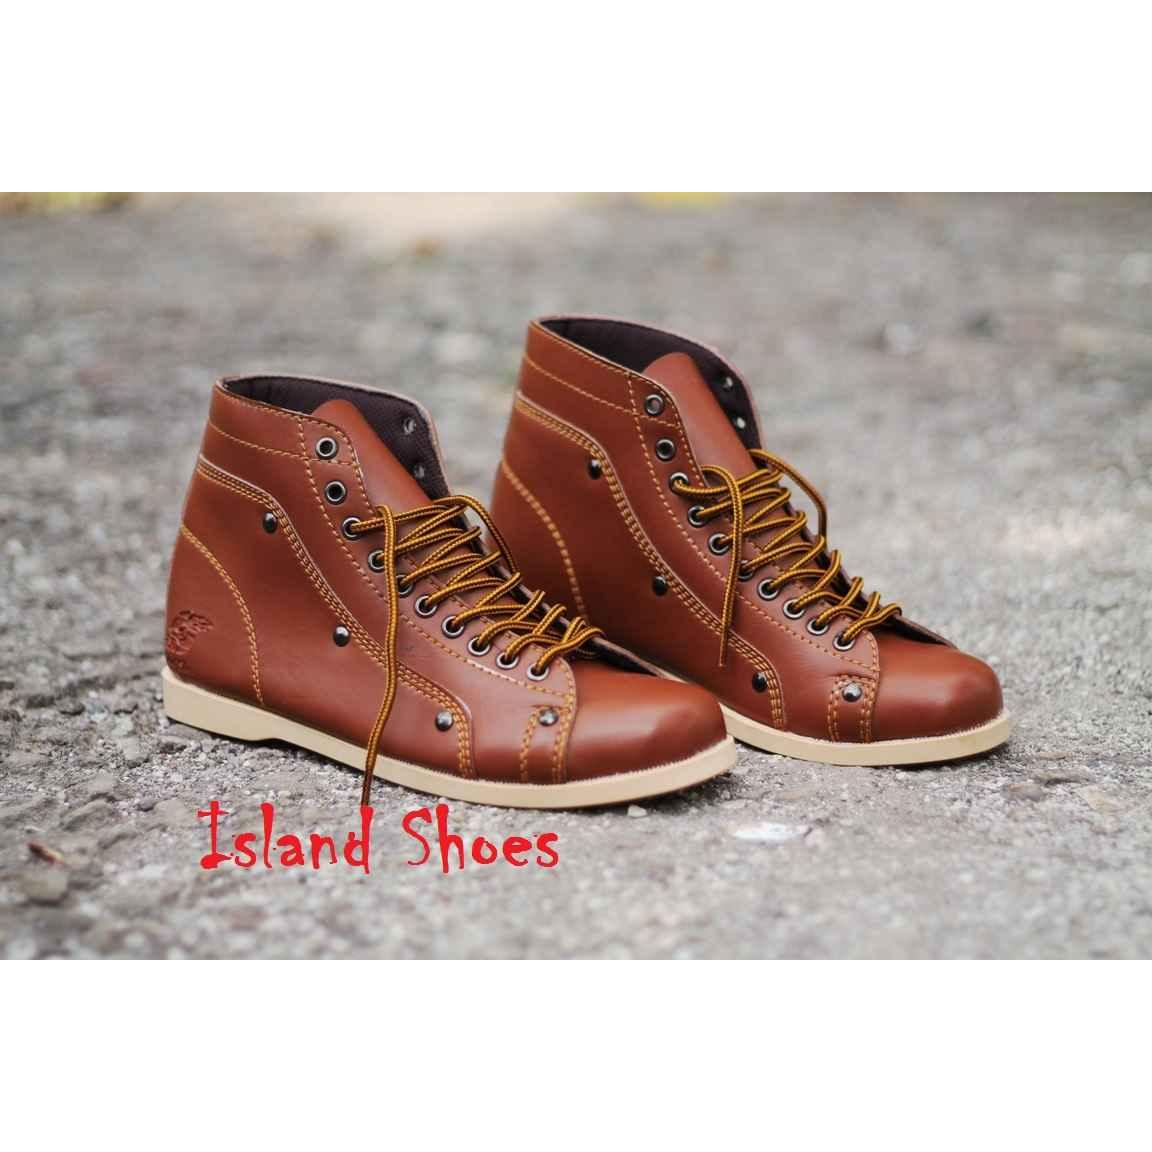 D Island Bandung Elevenia Shoes Slip On Moccasin Loafers Special Leather Cokelat Tua Sepatu Casual Boots Brown For Man